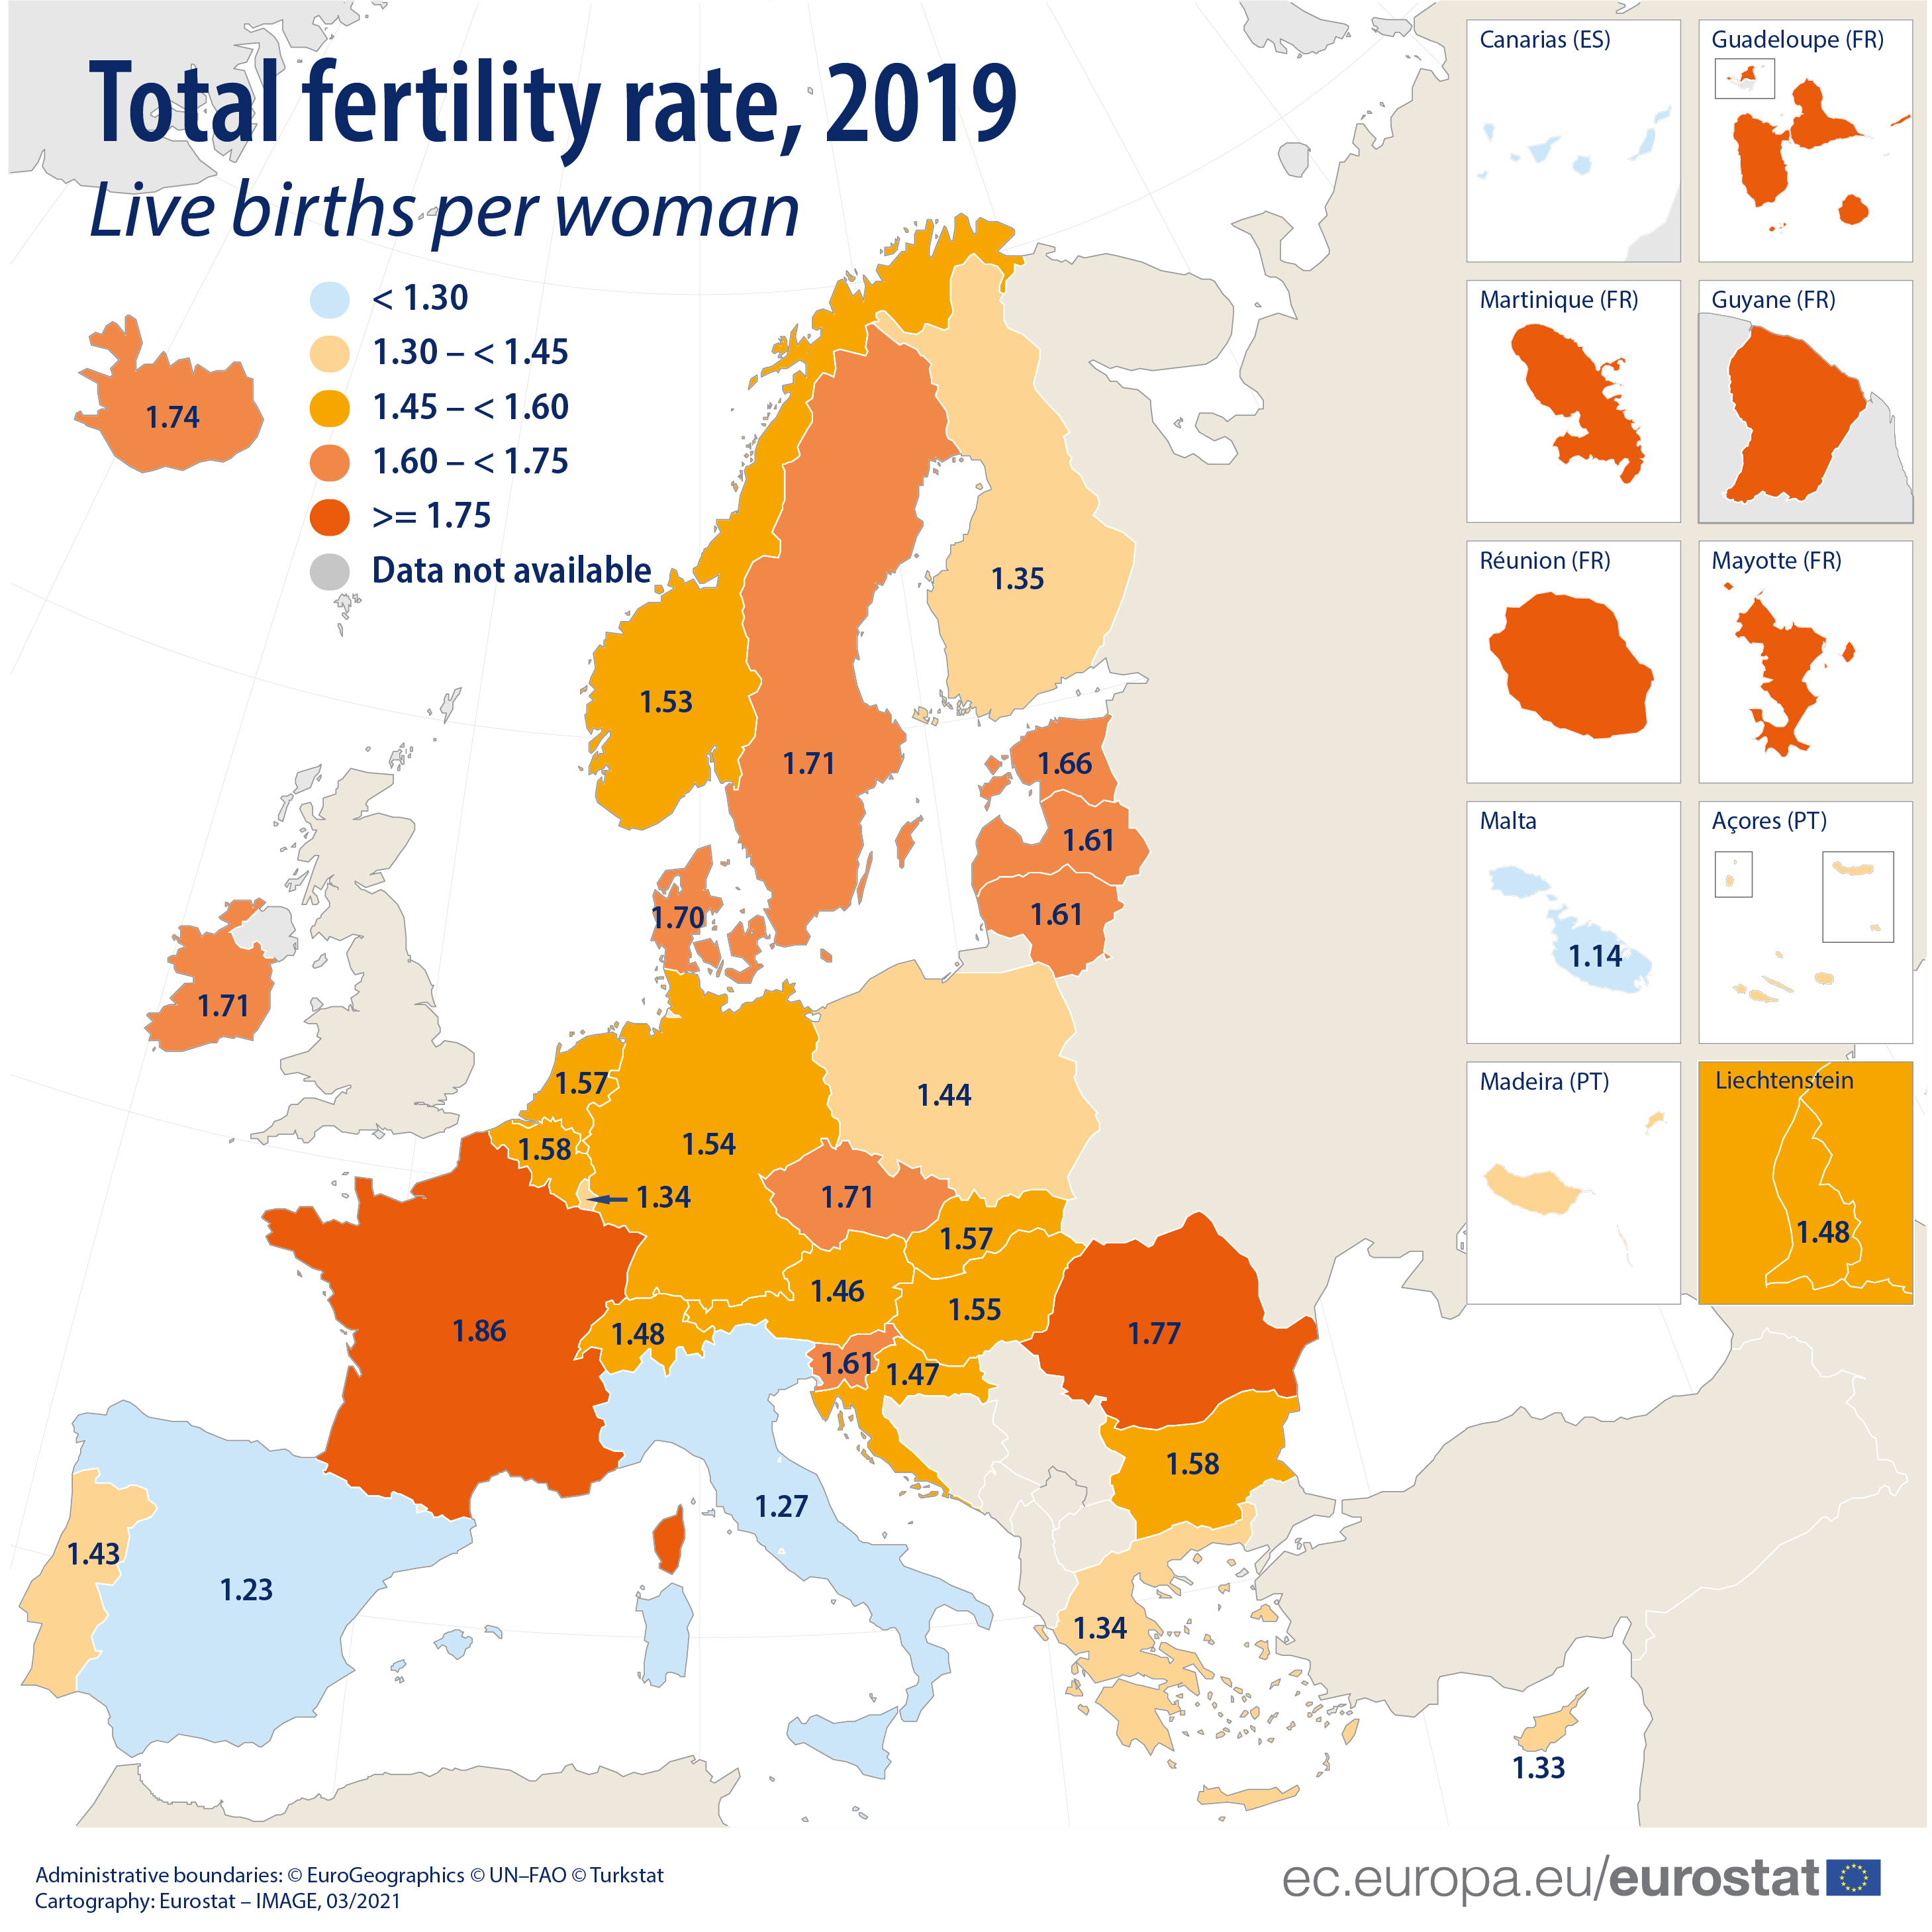 Total fertility rate per EU and EFTA country, 2019 data, map of Europe